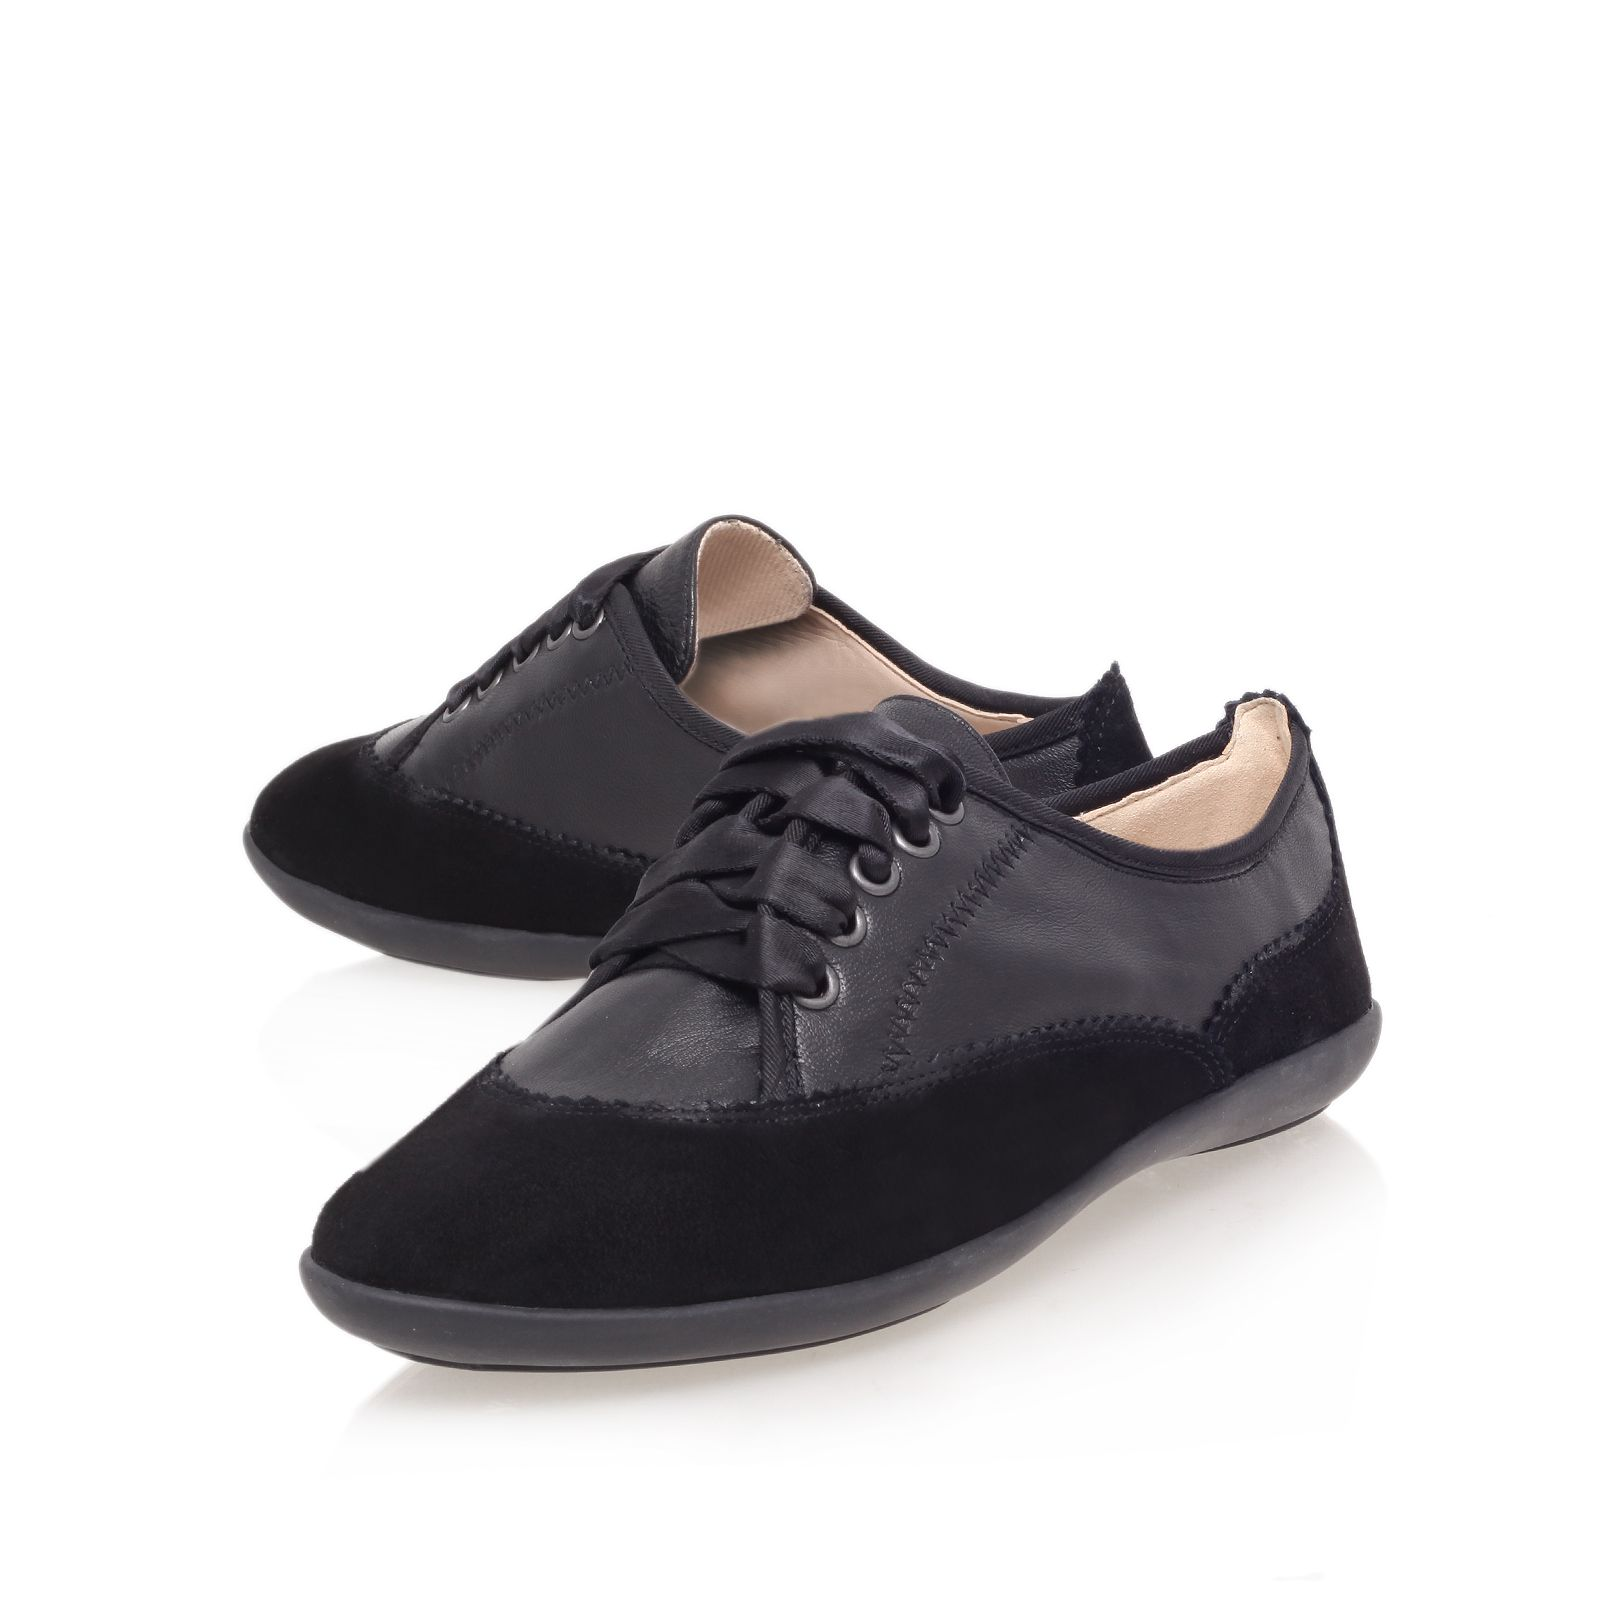 Kondofcute flat low top trainers